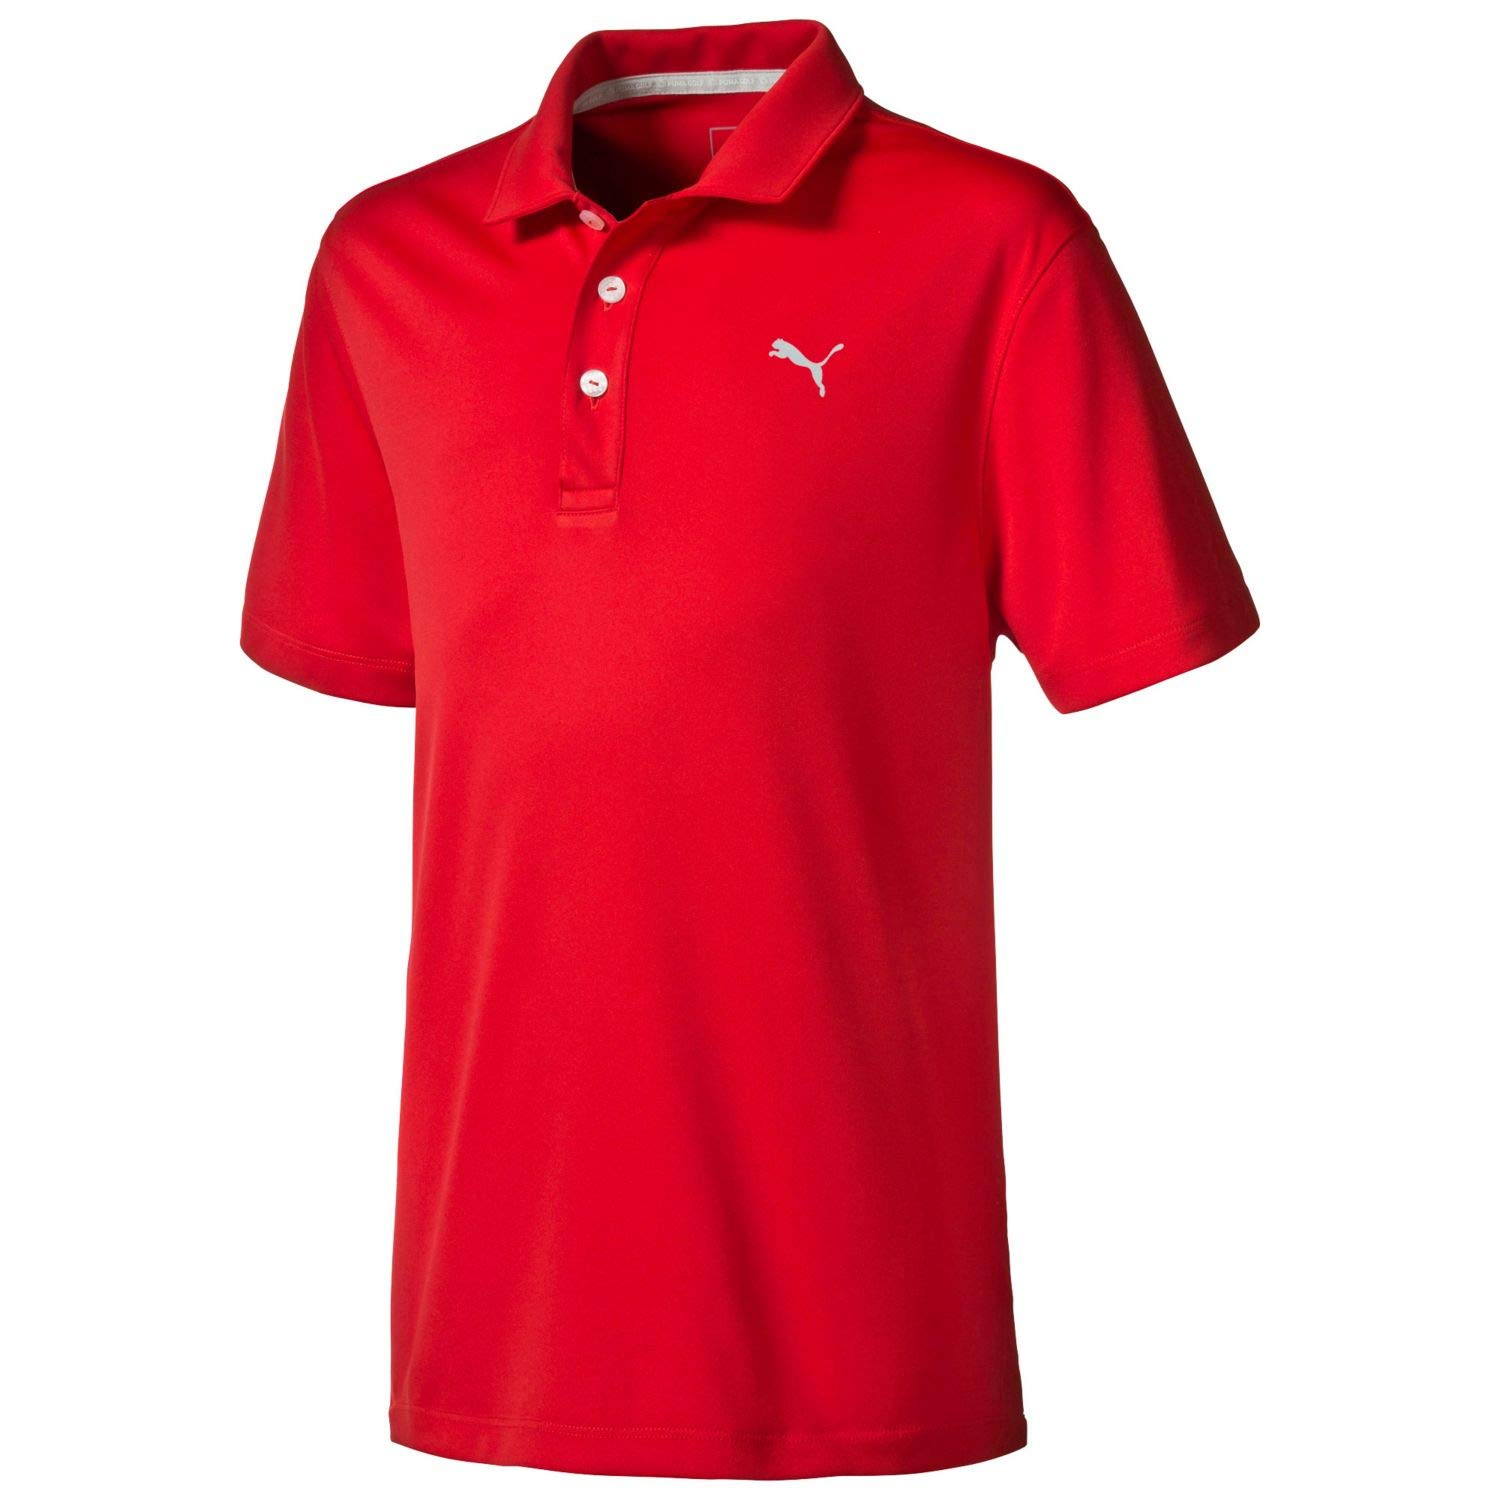 Puma Golf 2017 Boy's Pounce Polo, High Risk Red, X-Small